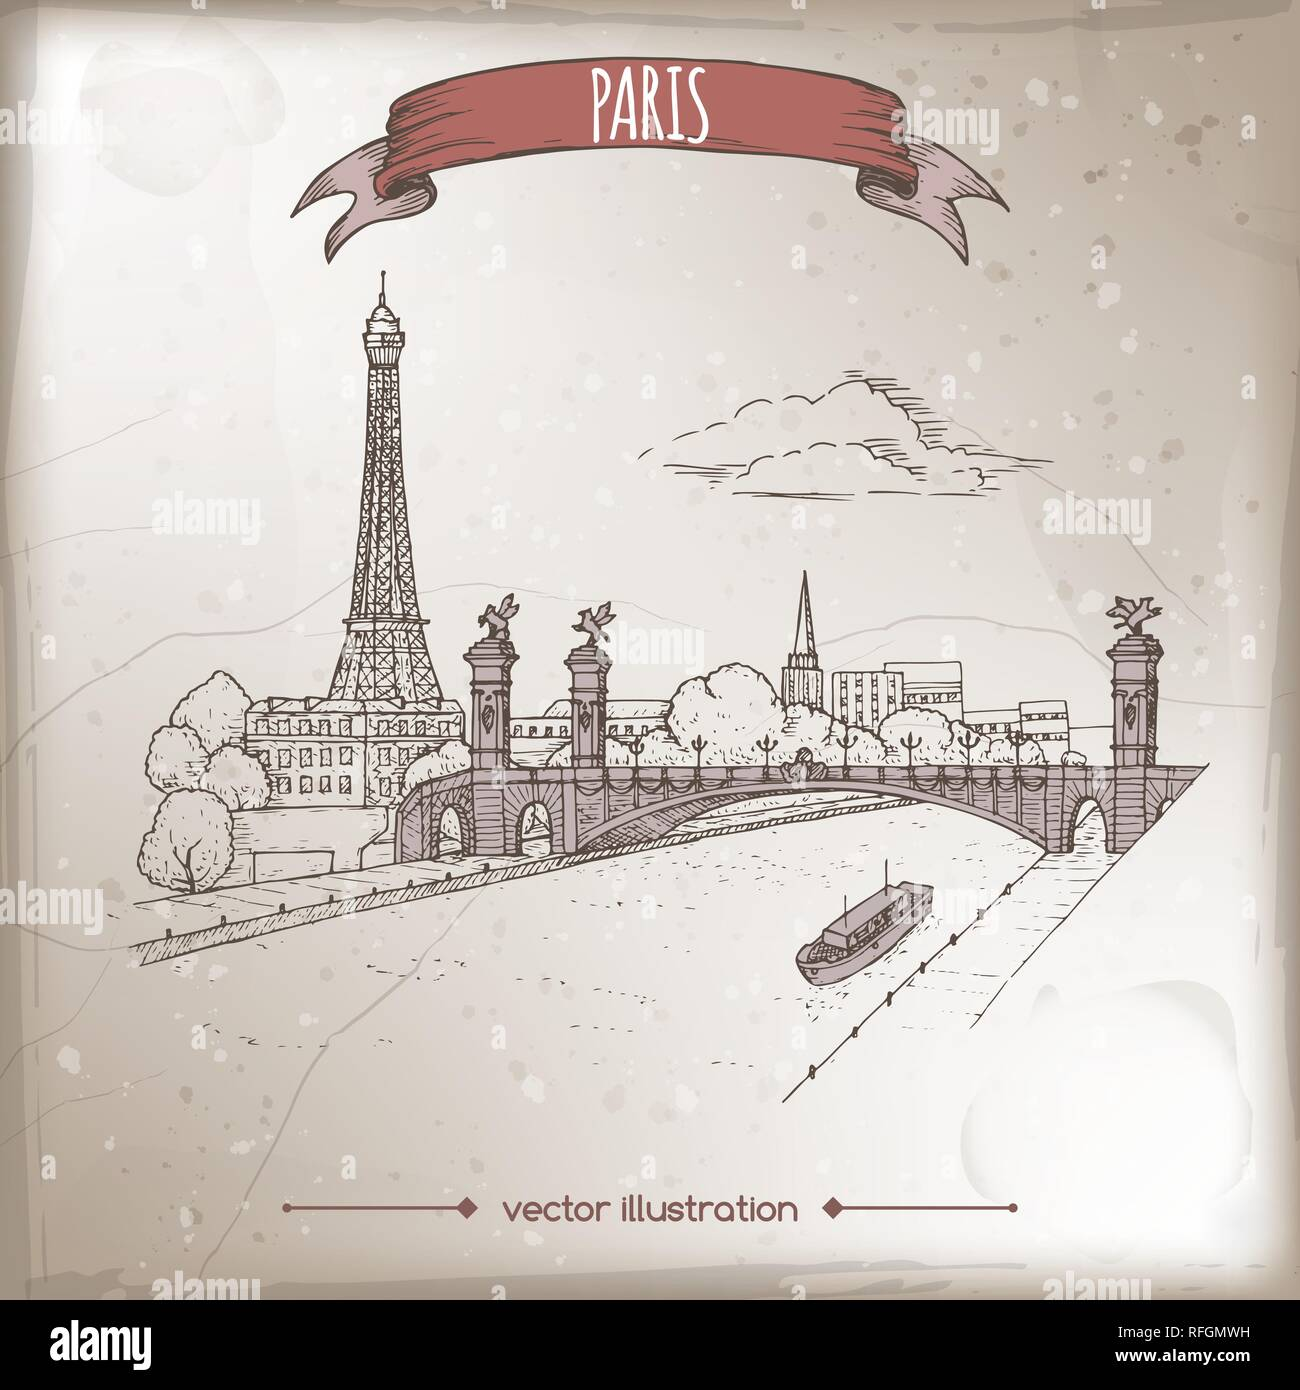 Vintage travel illustration with Eiffel tower and Pont Alexandre bridge in Paris, France. Hand drawn sketch. - Stock Vector